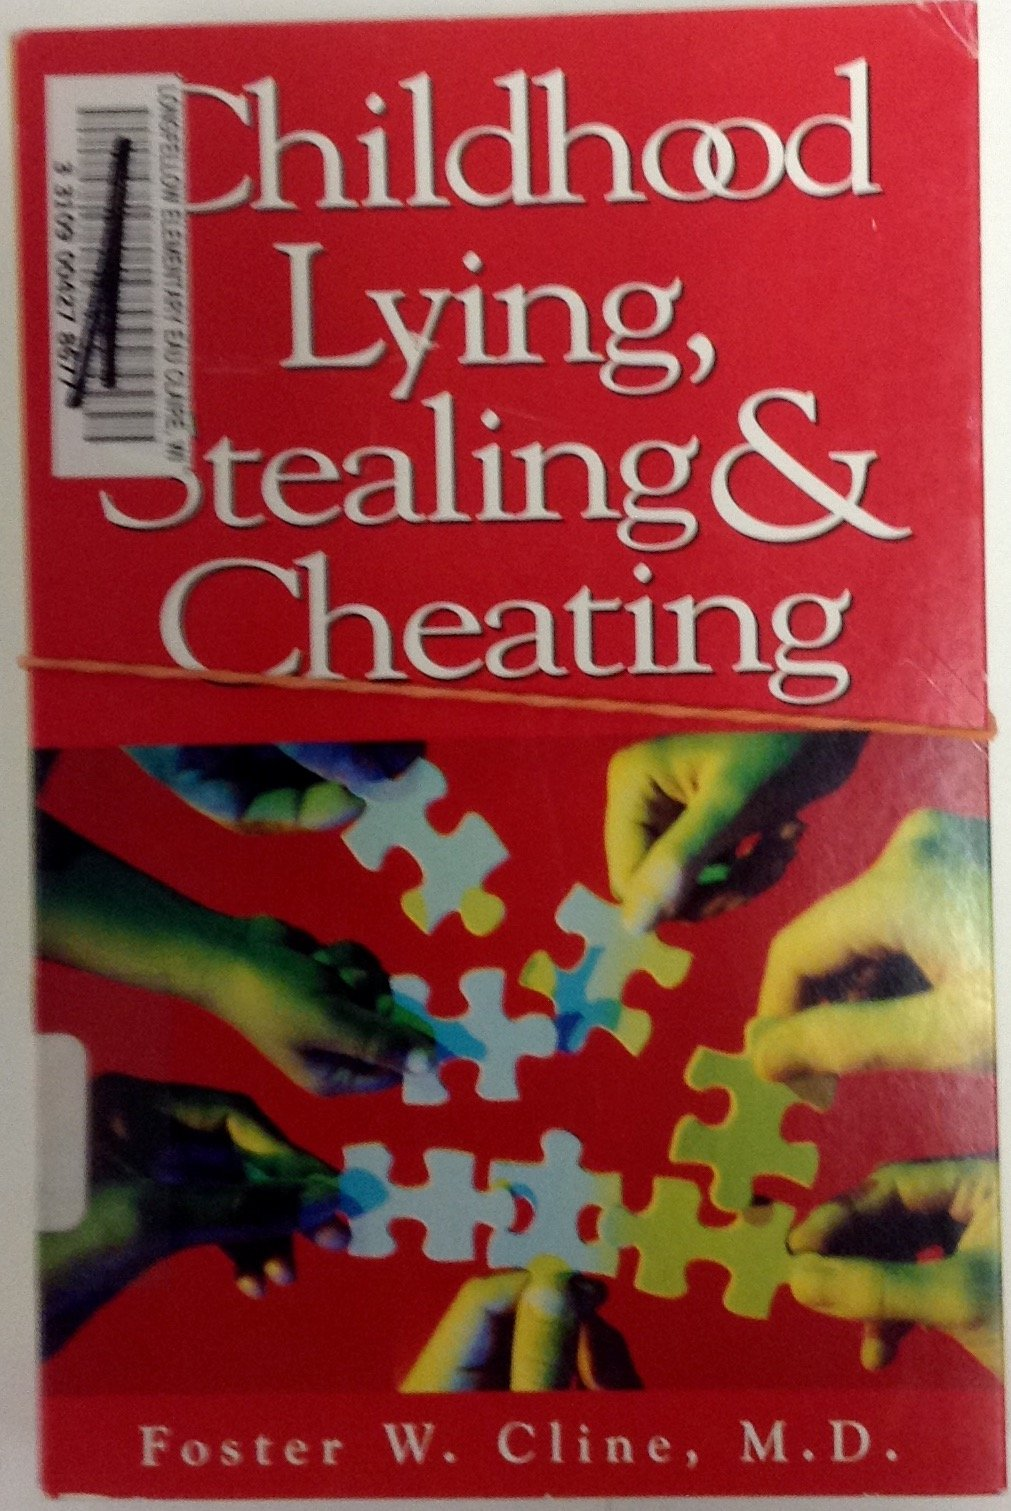 Childhood Lying, Stealing & Cheating: Foster W  Cline